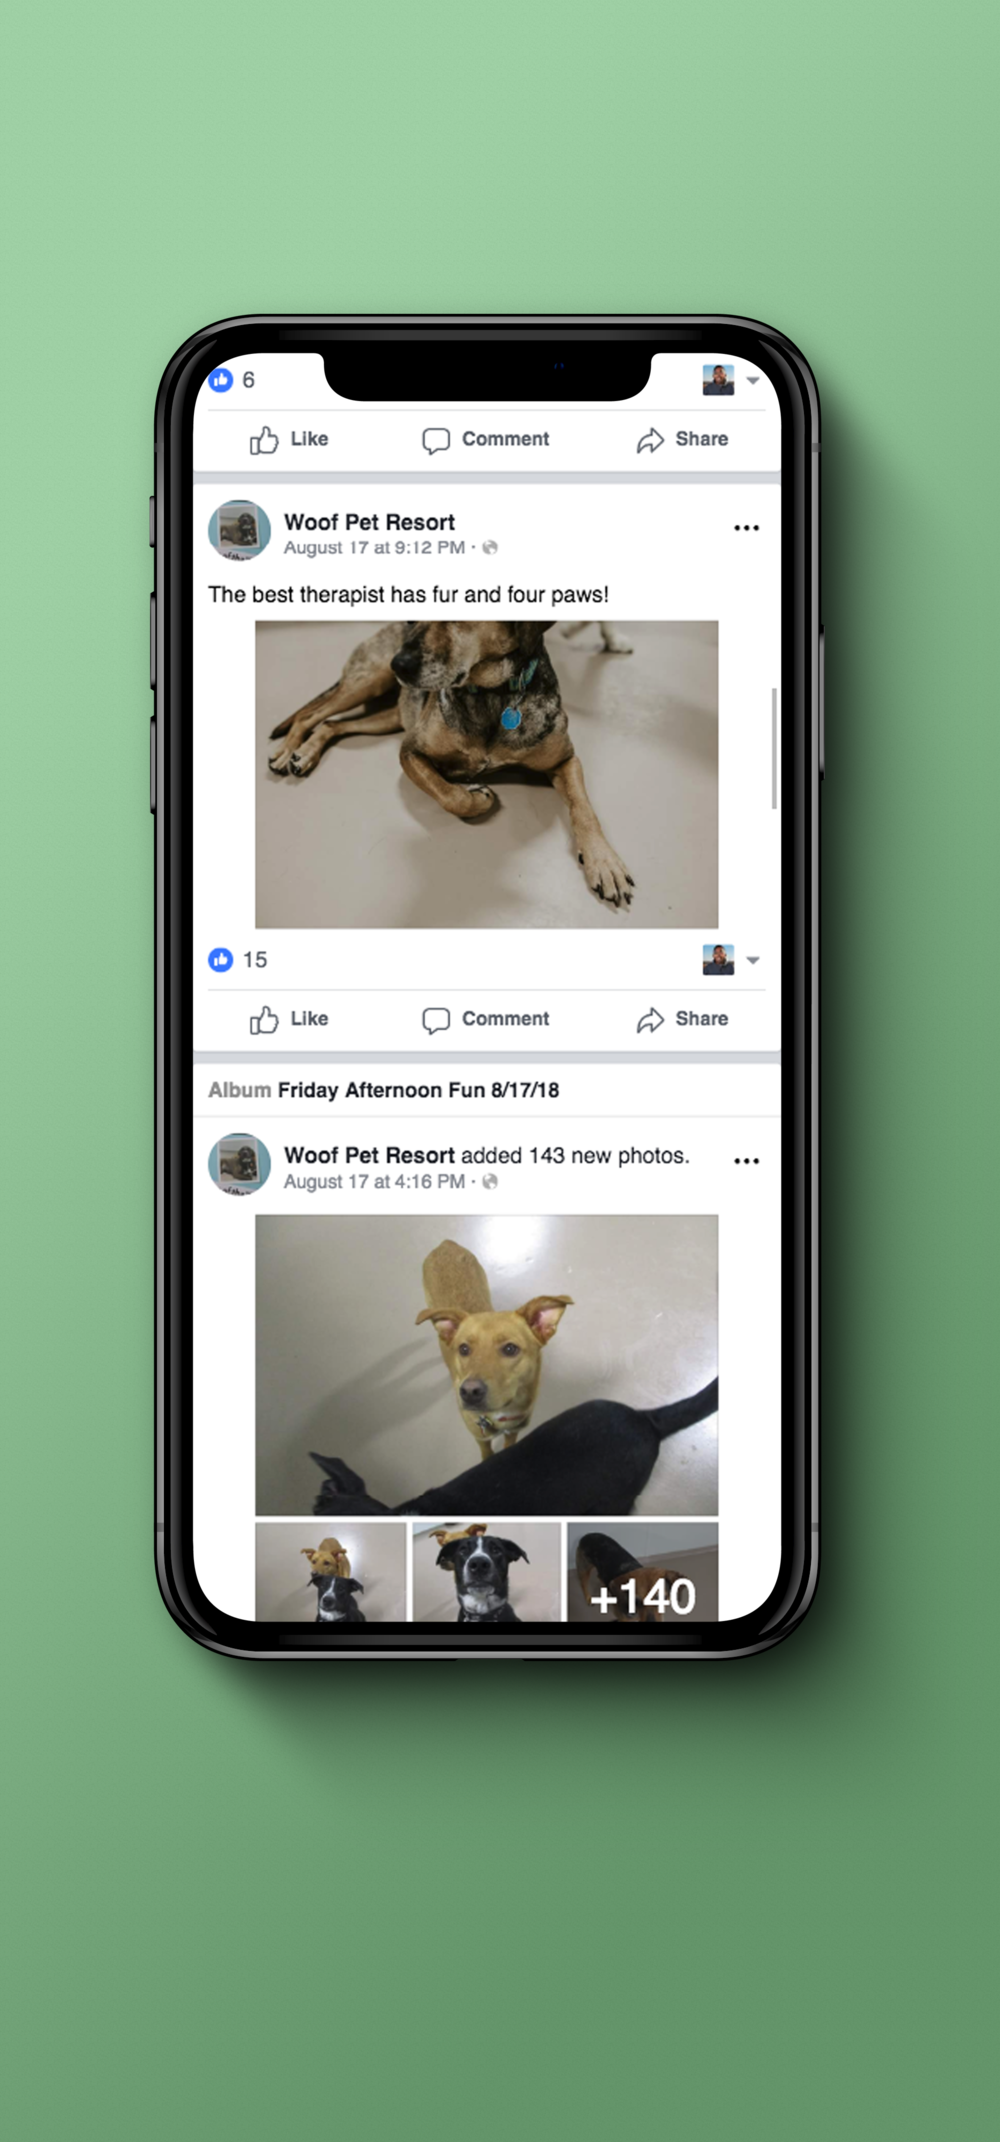 Check-in on your dog everyday on Facebook. - Our team knows how hard it can be being separated from your pup while you're at work, on vacation, or wherever else you may find yourself. That's why every dog that hangs out with us gets posted on our company Facebook page twice a day.